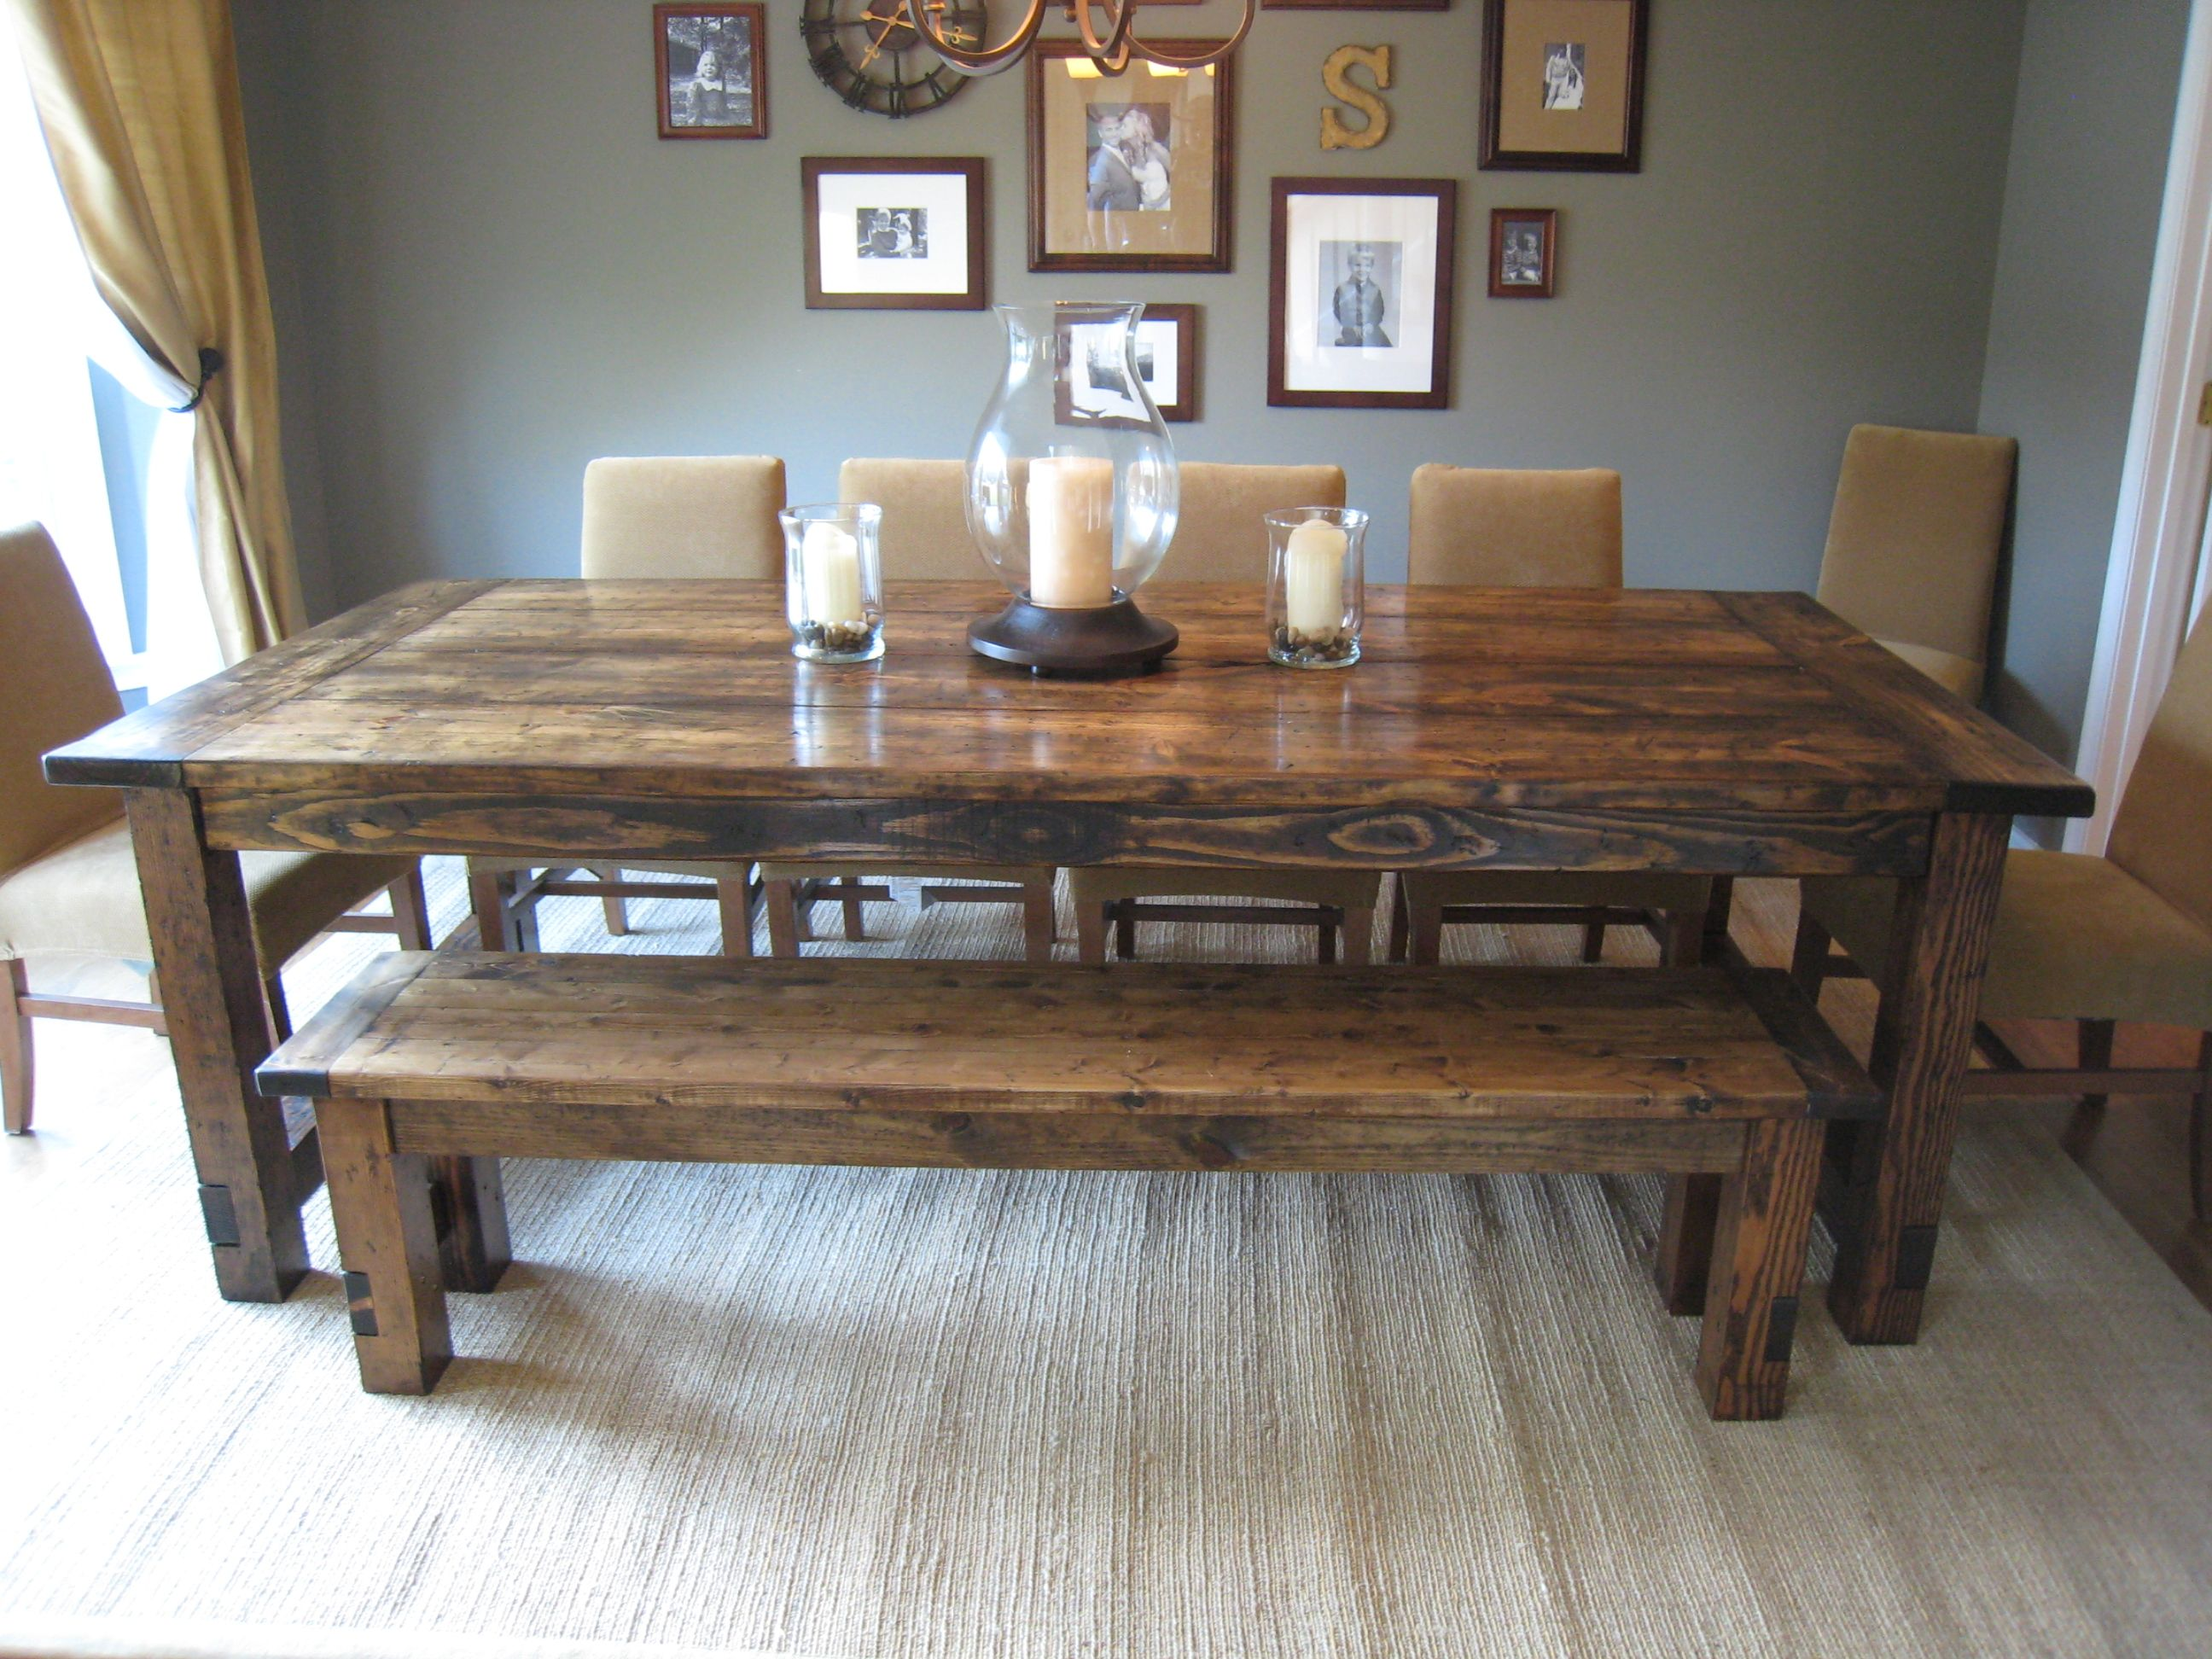 dinning table make kitchen table 20 best ideas about Dinning Table on Pinterest Dining room tables Kitchen tables and Contemporary neutral dining room